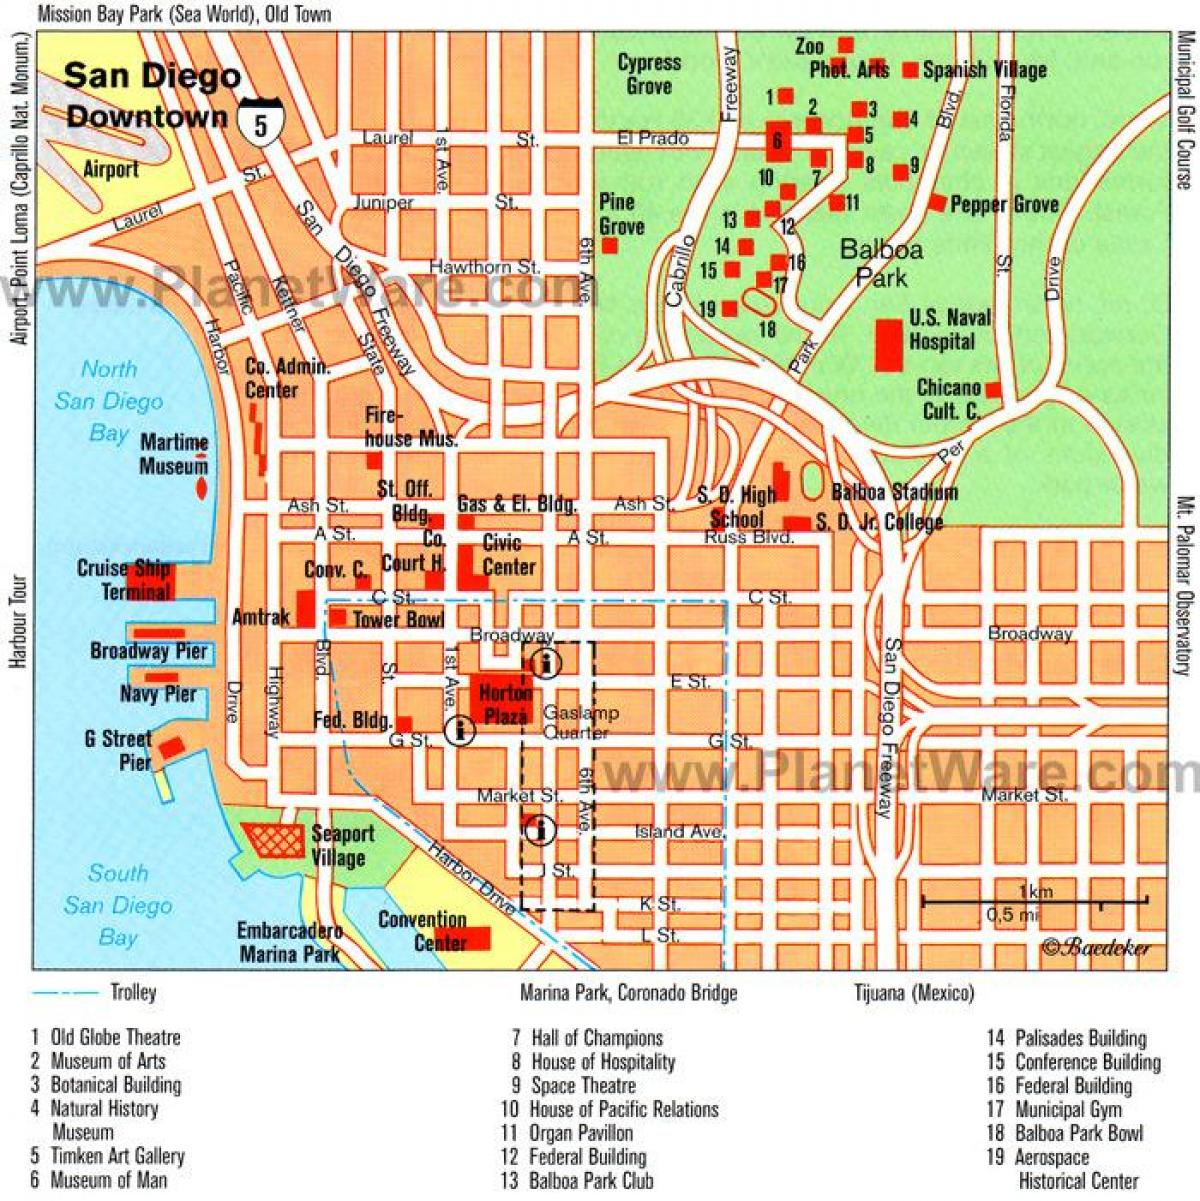 Downtown San Diego Map - Map Of Downtown San Diego (California - Usa) - Printable Map Of Downtown San Diego